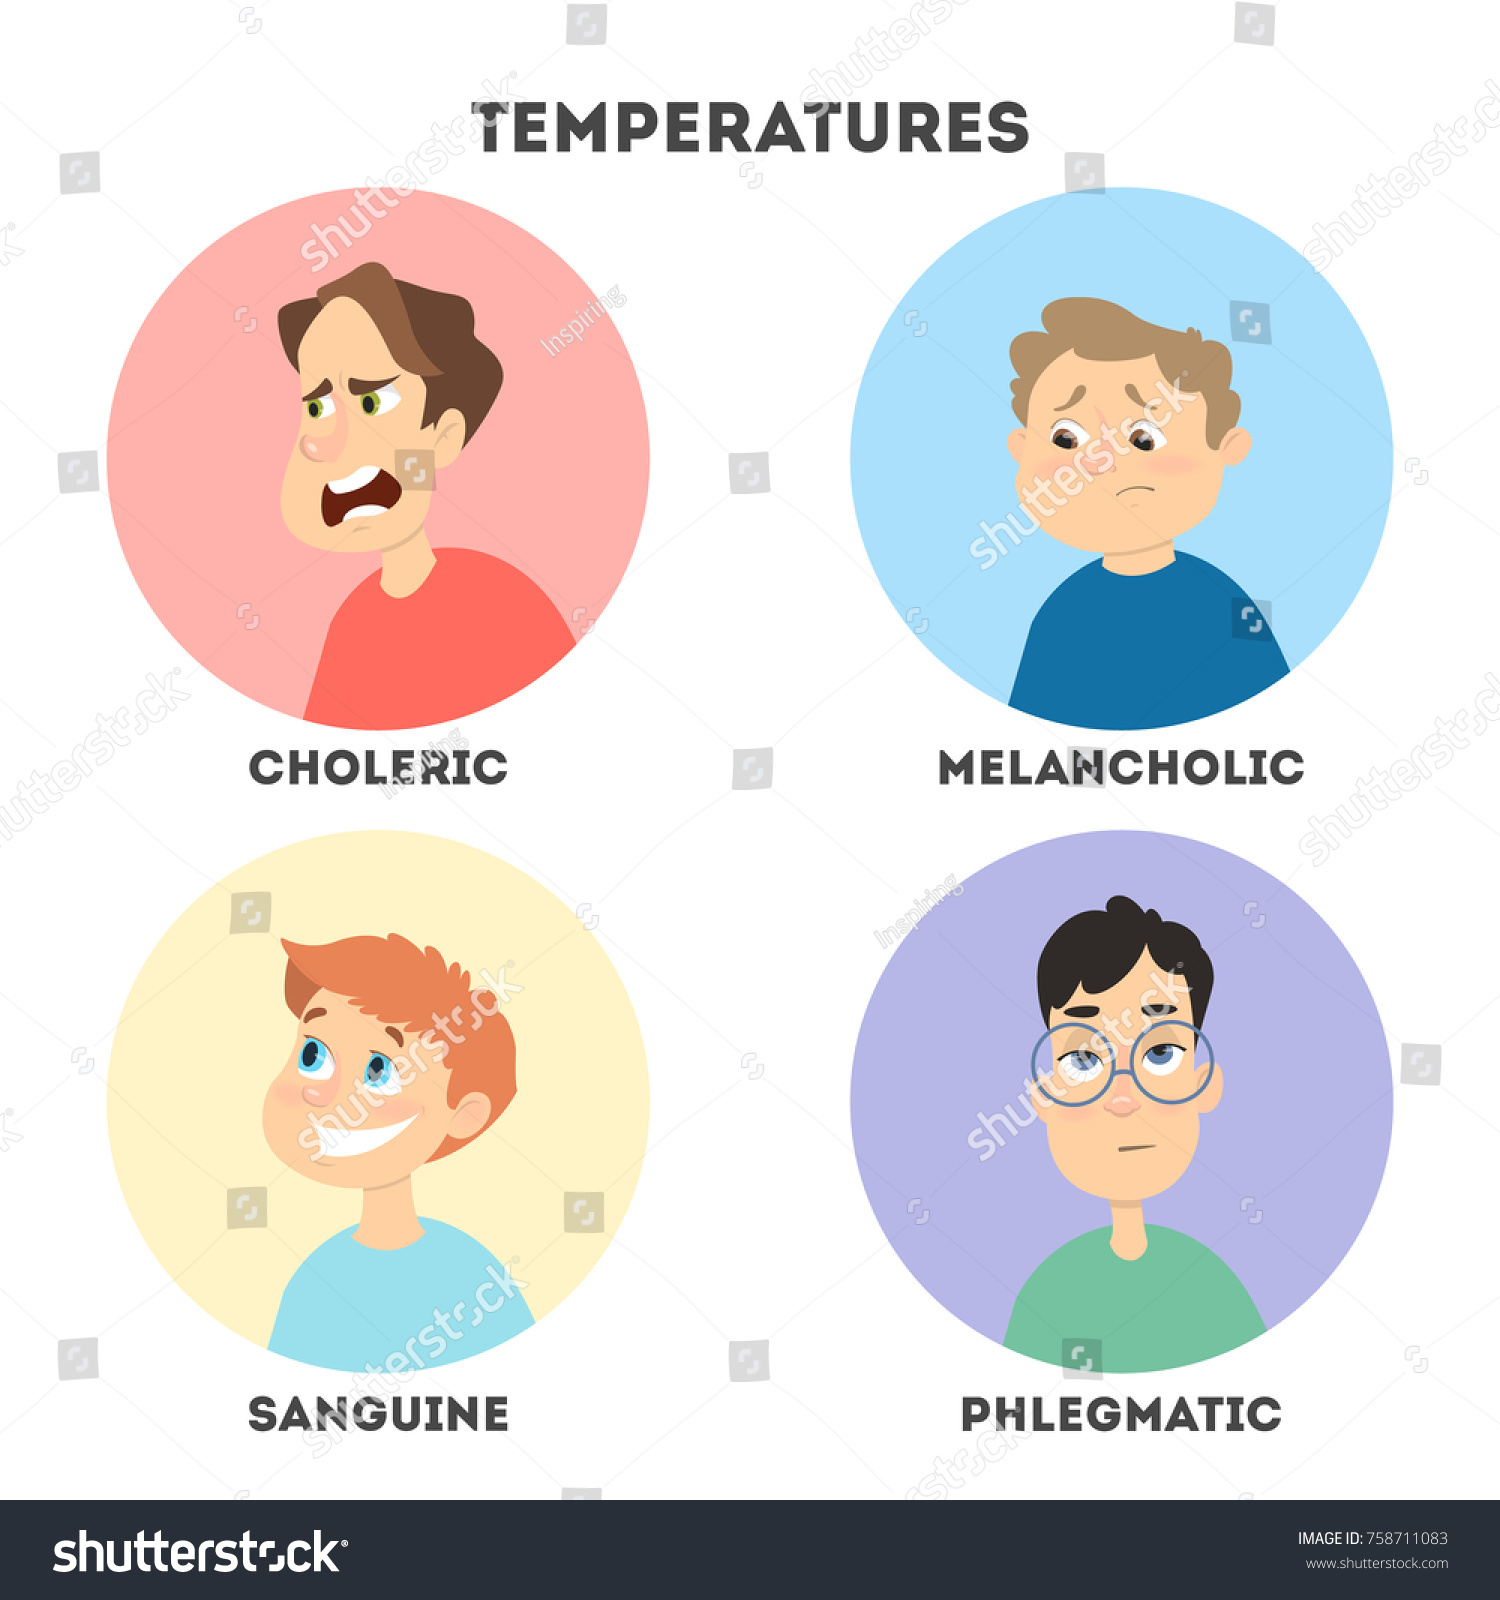 Who are phlegmatic and how do they differ from other types